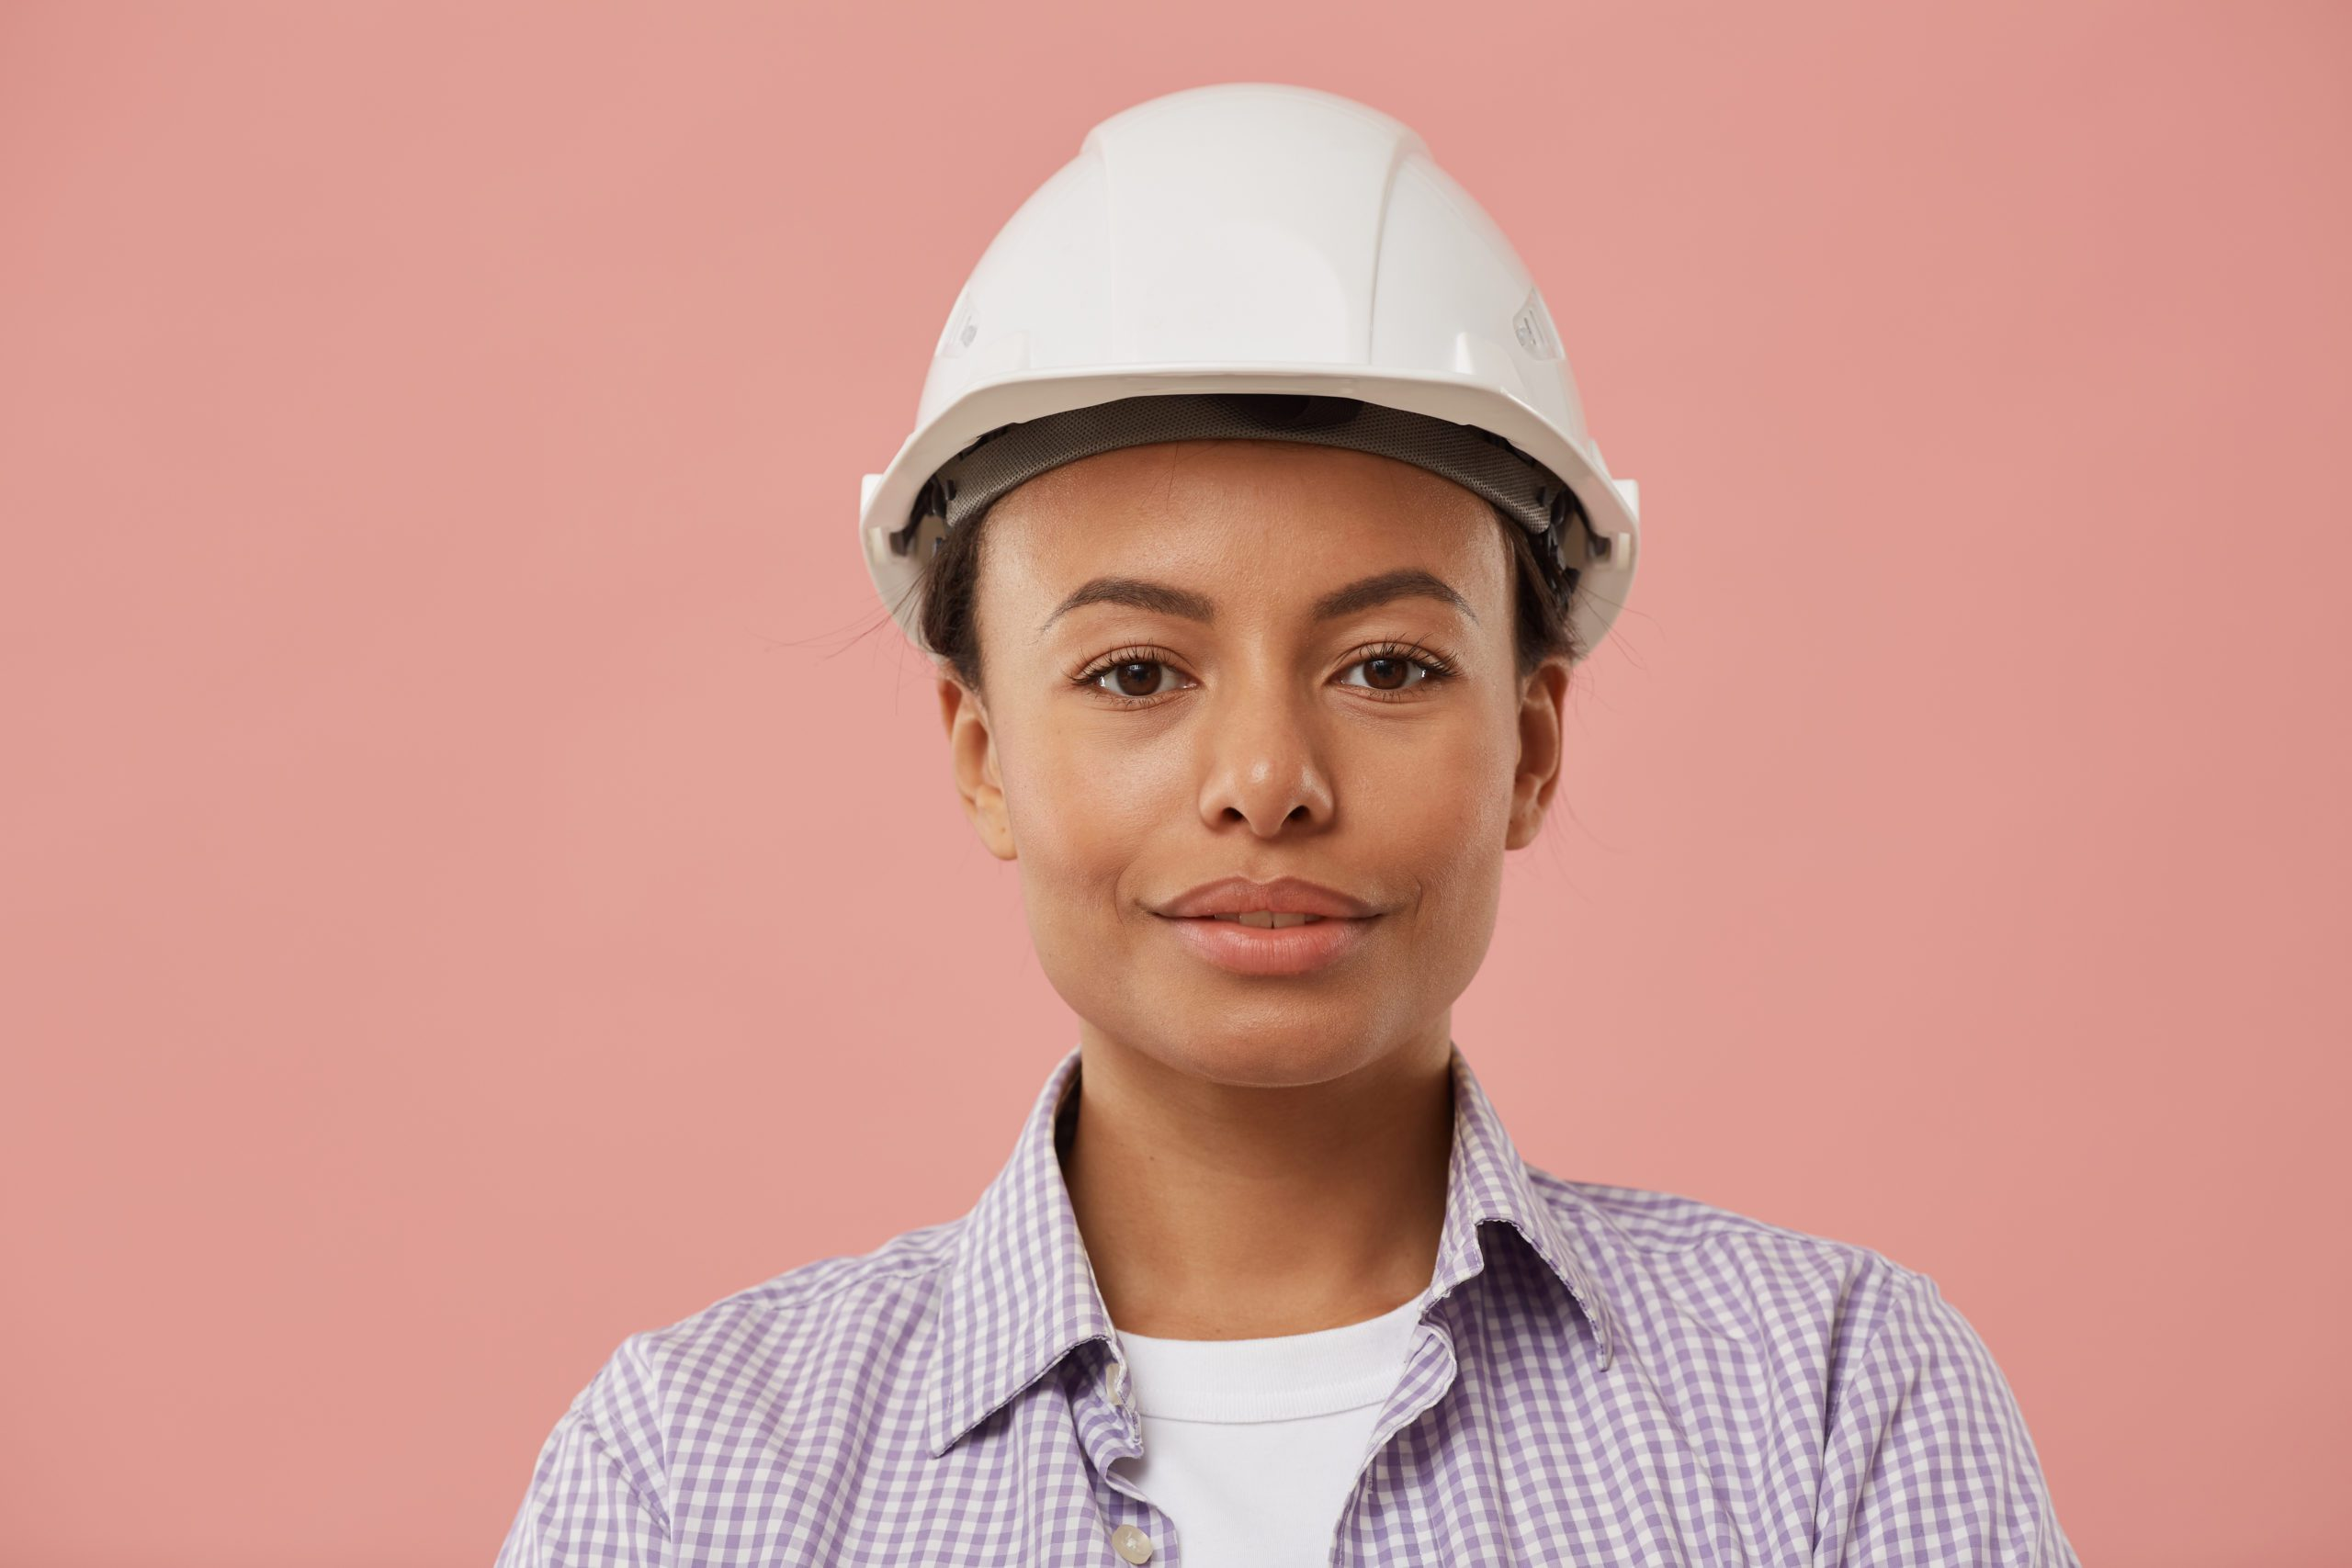 Head and shoulders portrait of beautiful female worker wearing hardhat and looking at camera while posing confidently against pale pink background, copy space